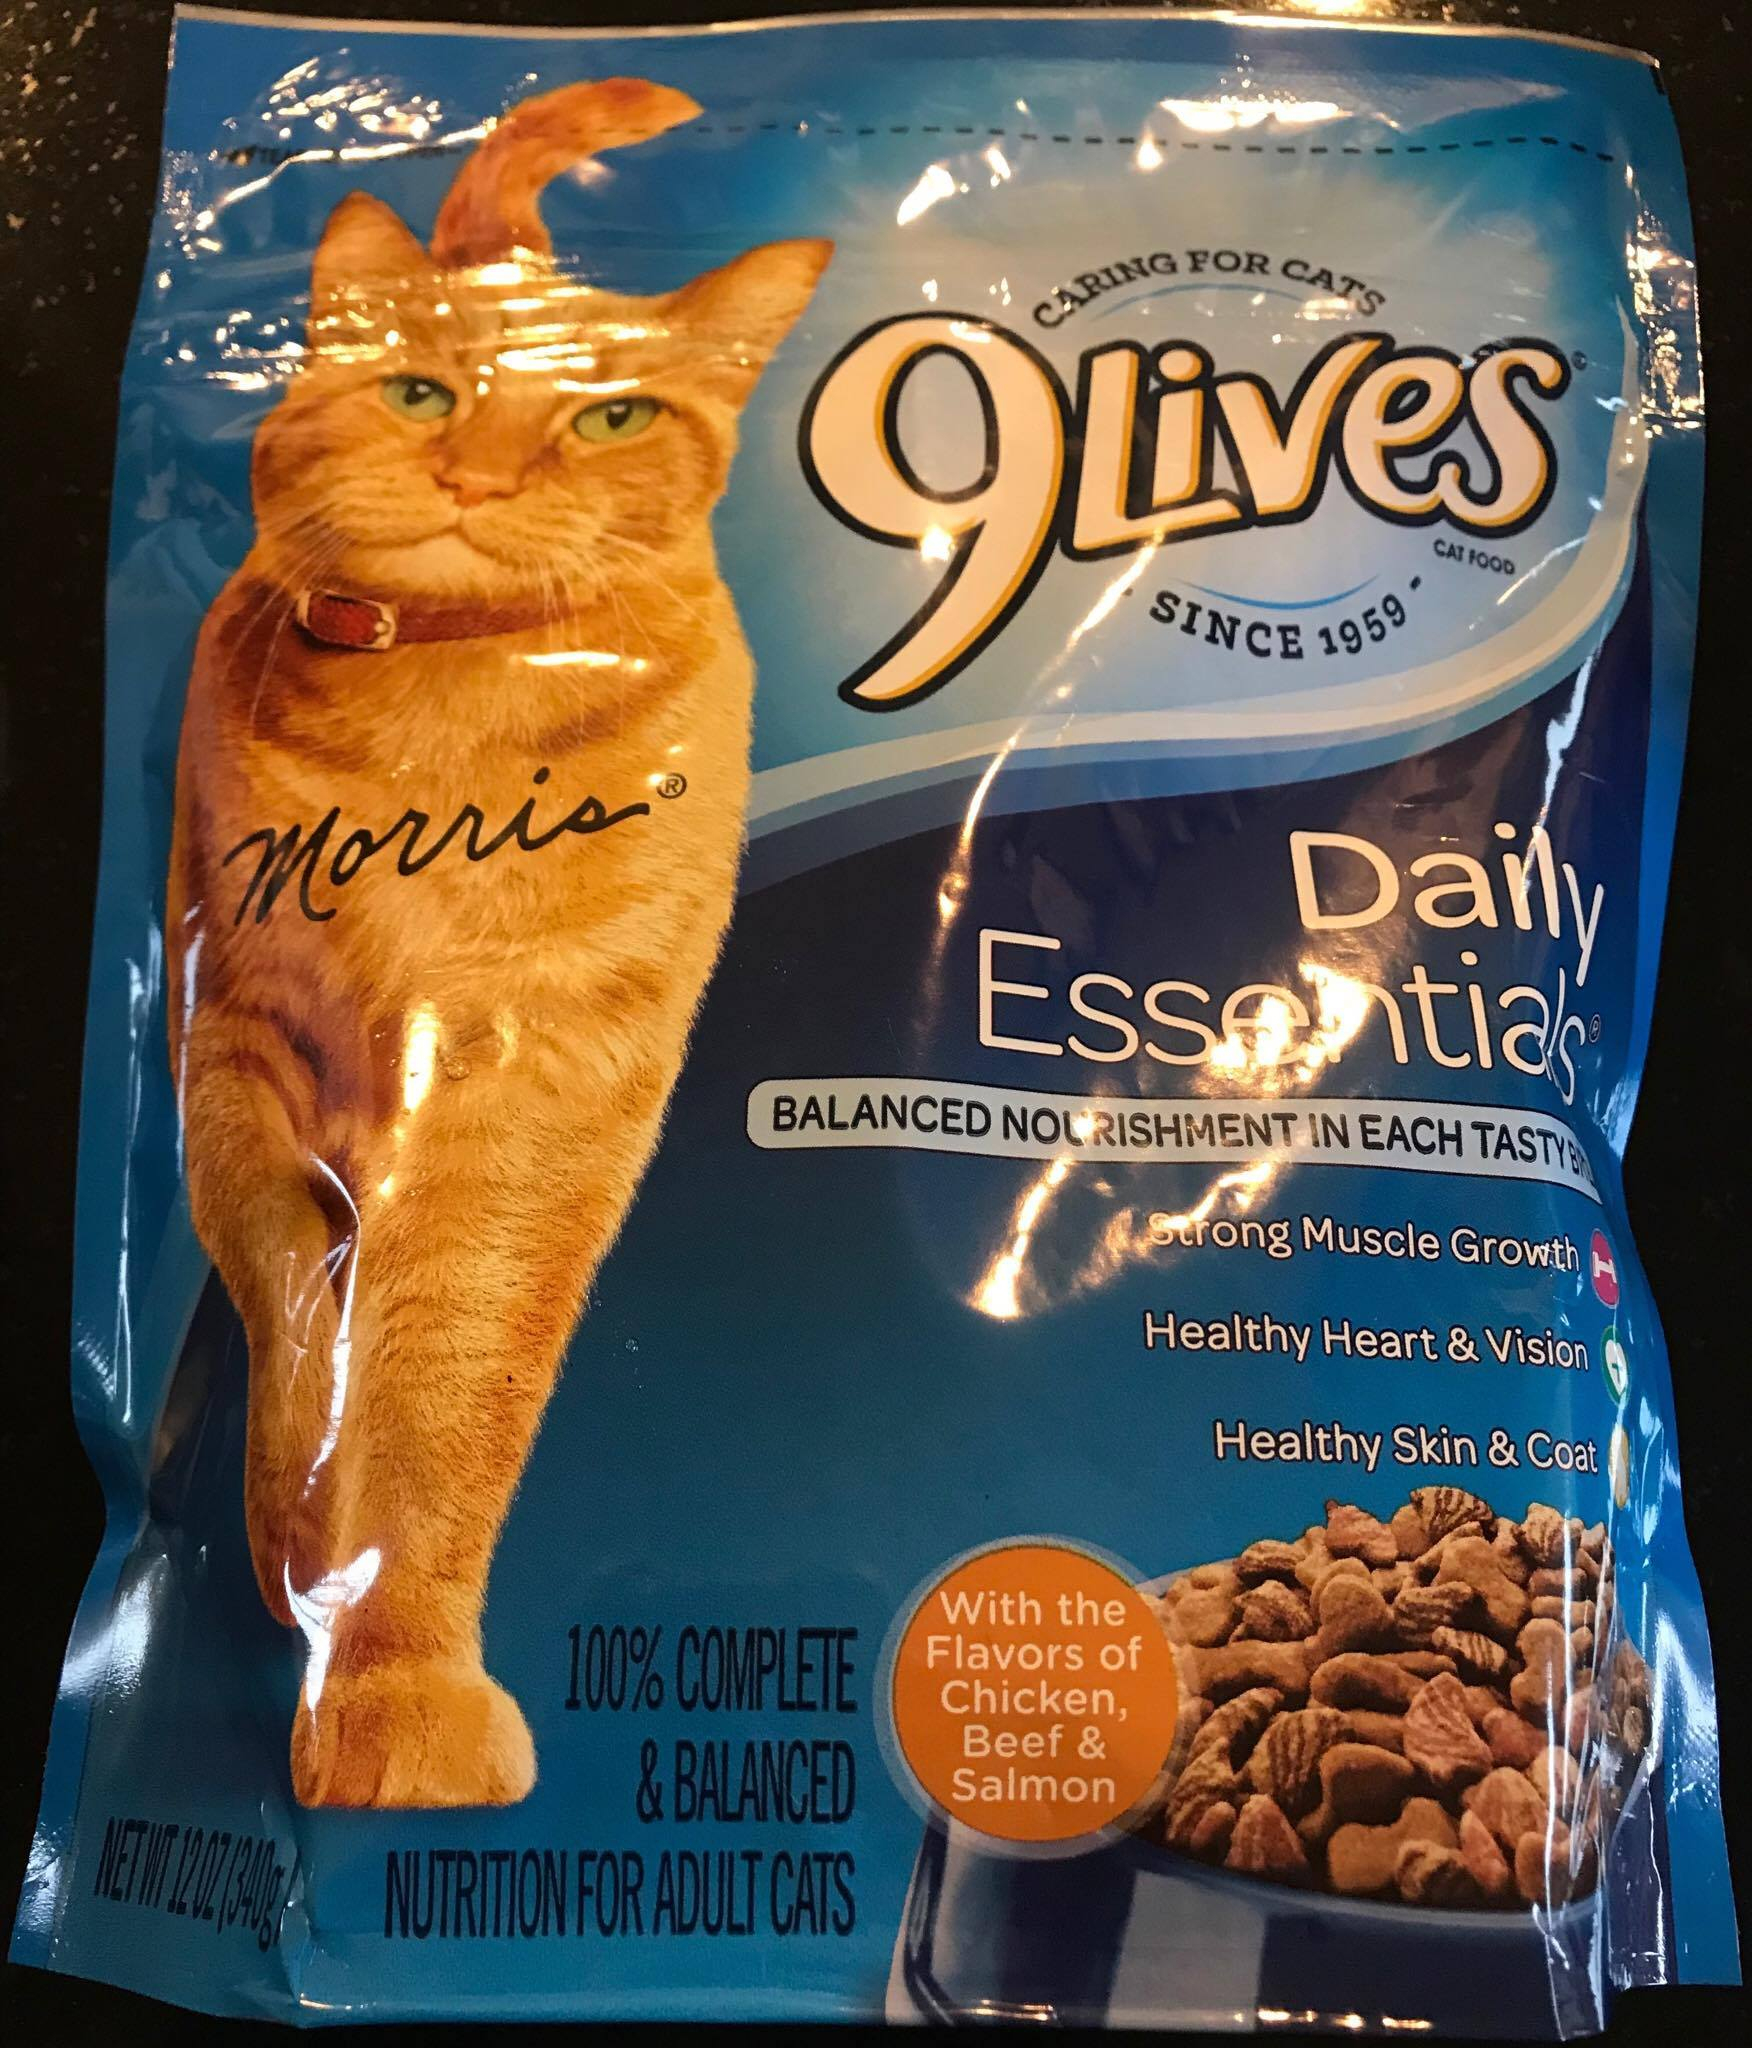 Confirmed! Free 9Lives Cat Food! Print Now!! #couponcommunity - Free Printable 9 Lives Cat Food Coupons